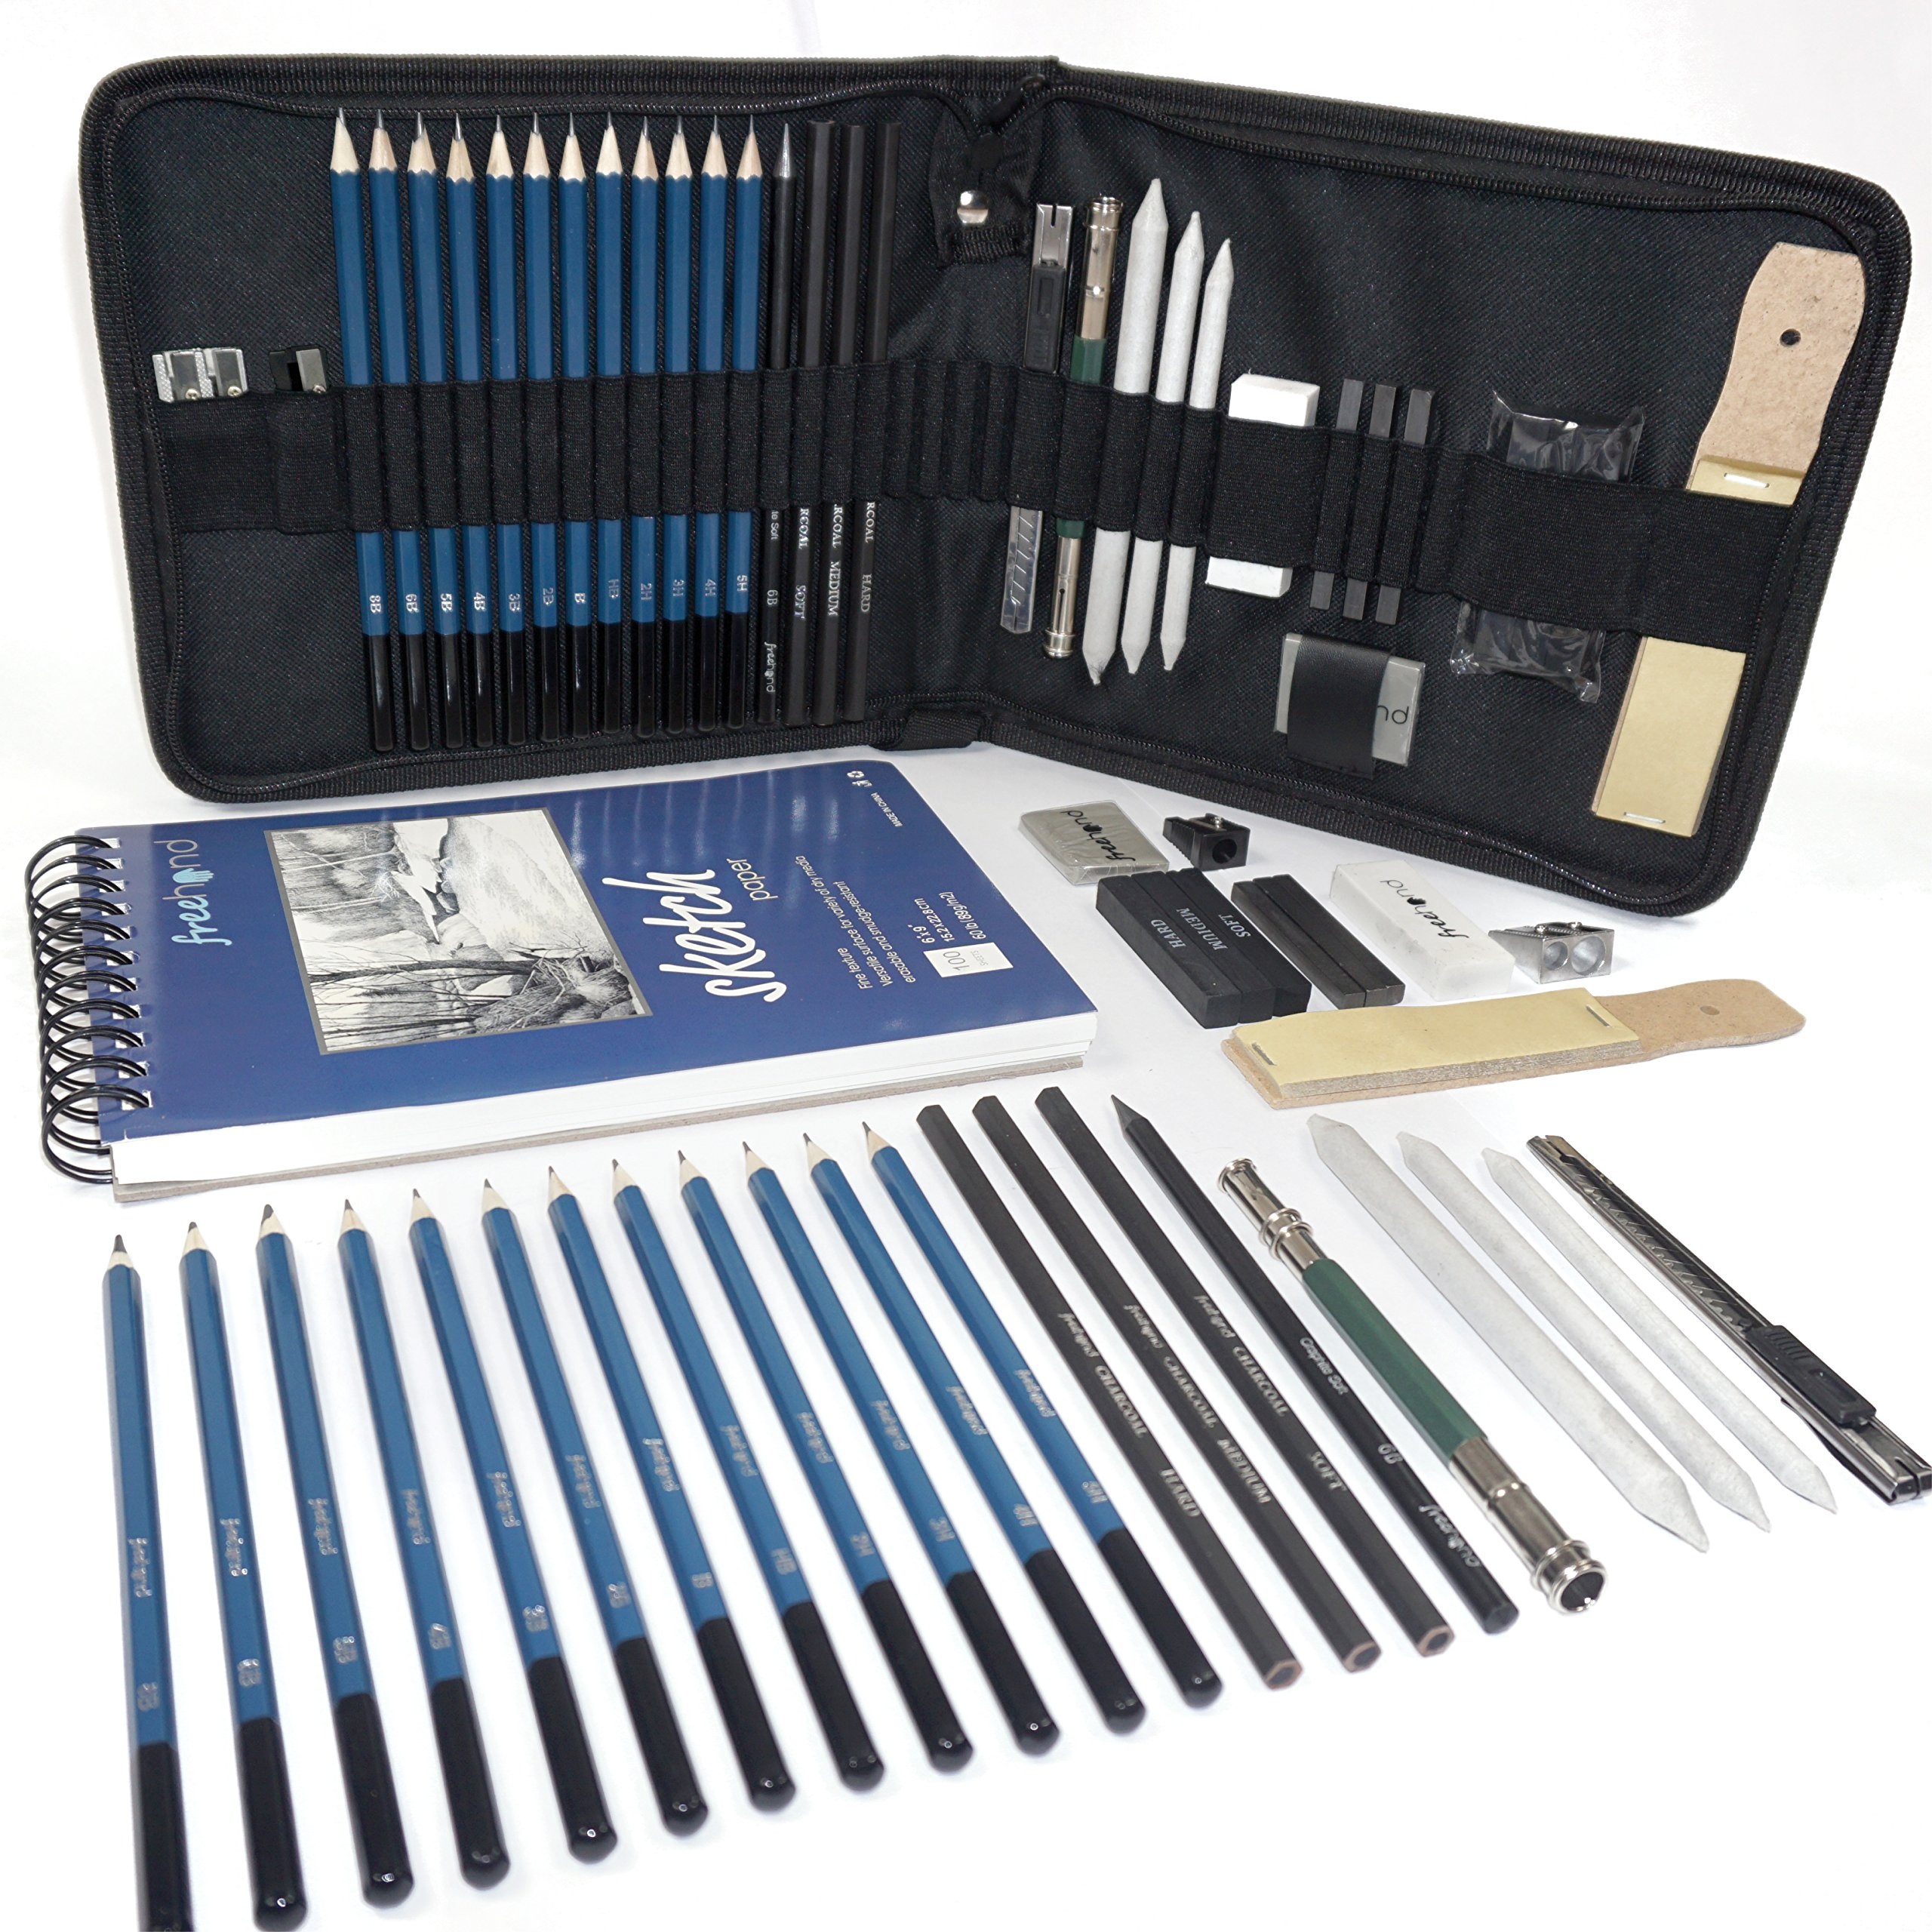 Professional Art Set - Drawing, Sketching and Charcoal Pencils. 100 Page Drawing Pad. Kneaded Eraser included. Art Kit for Kids, Teens and Adults